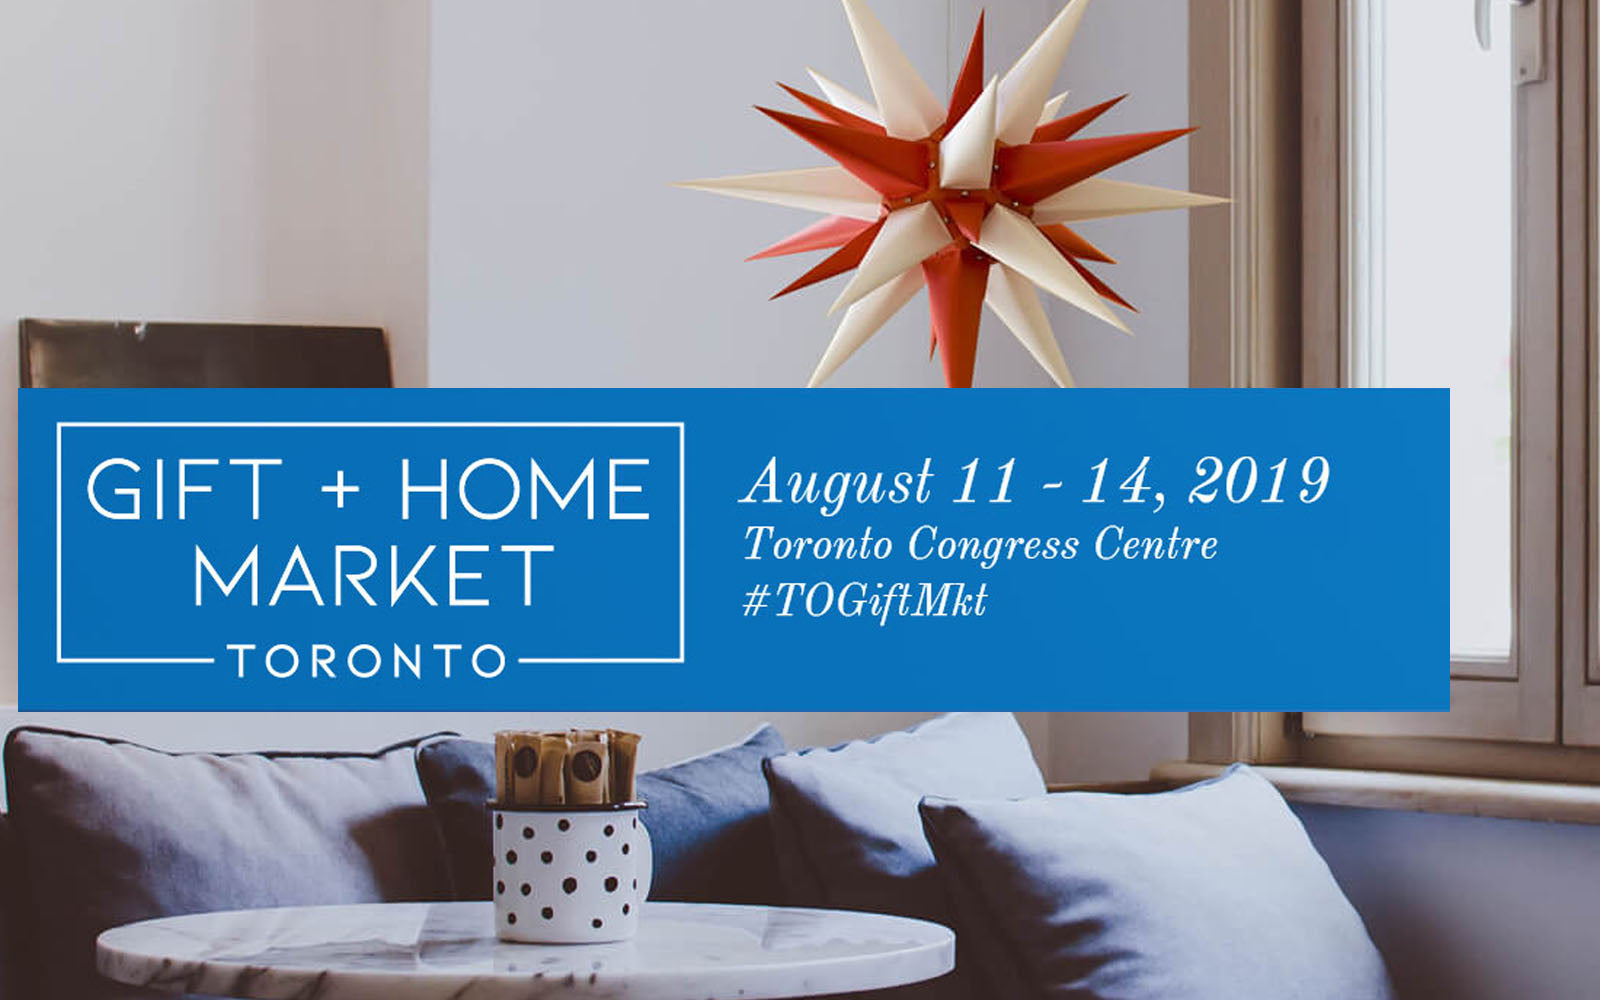 WELCOME TO THE NEW TORONTO GIFT+HOME MARKET